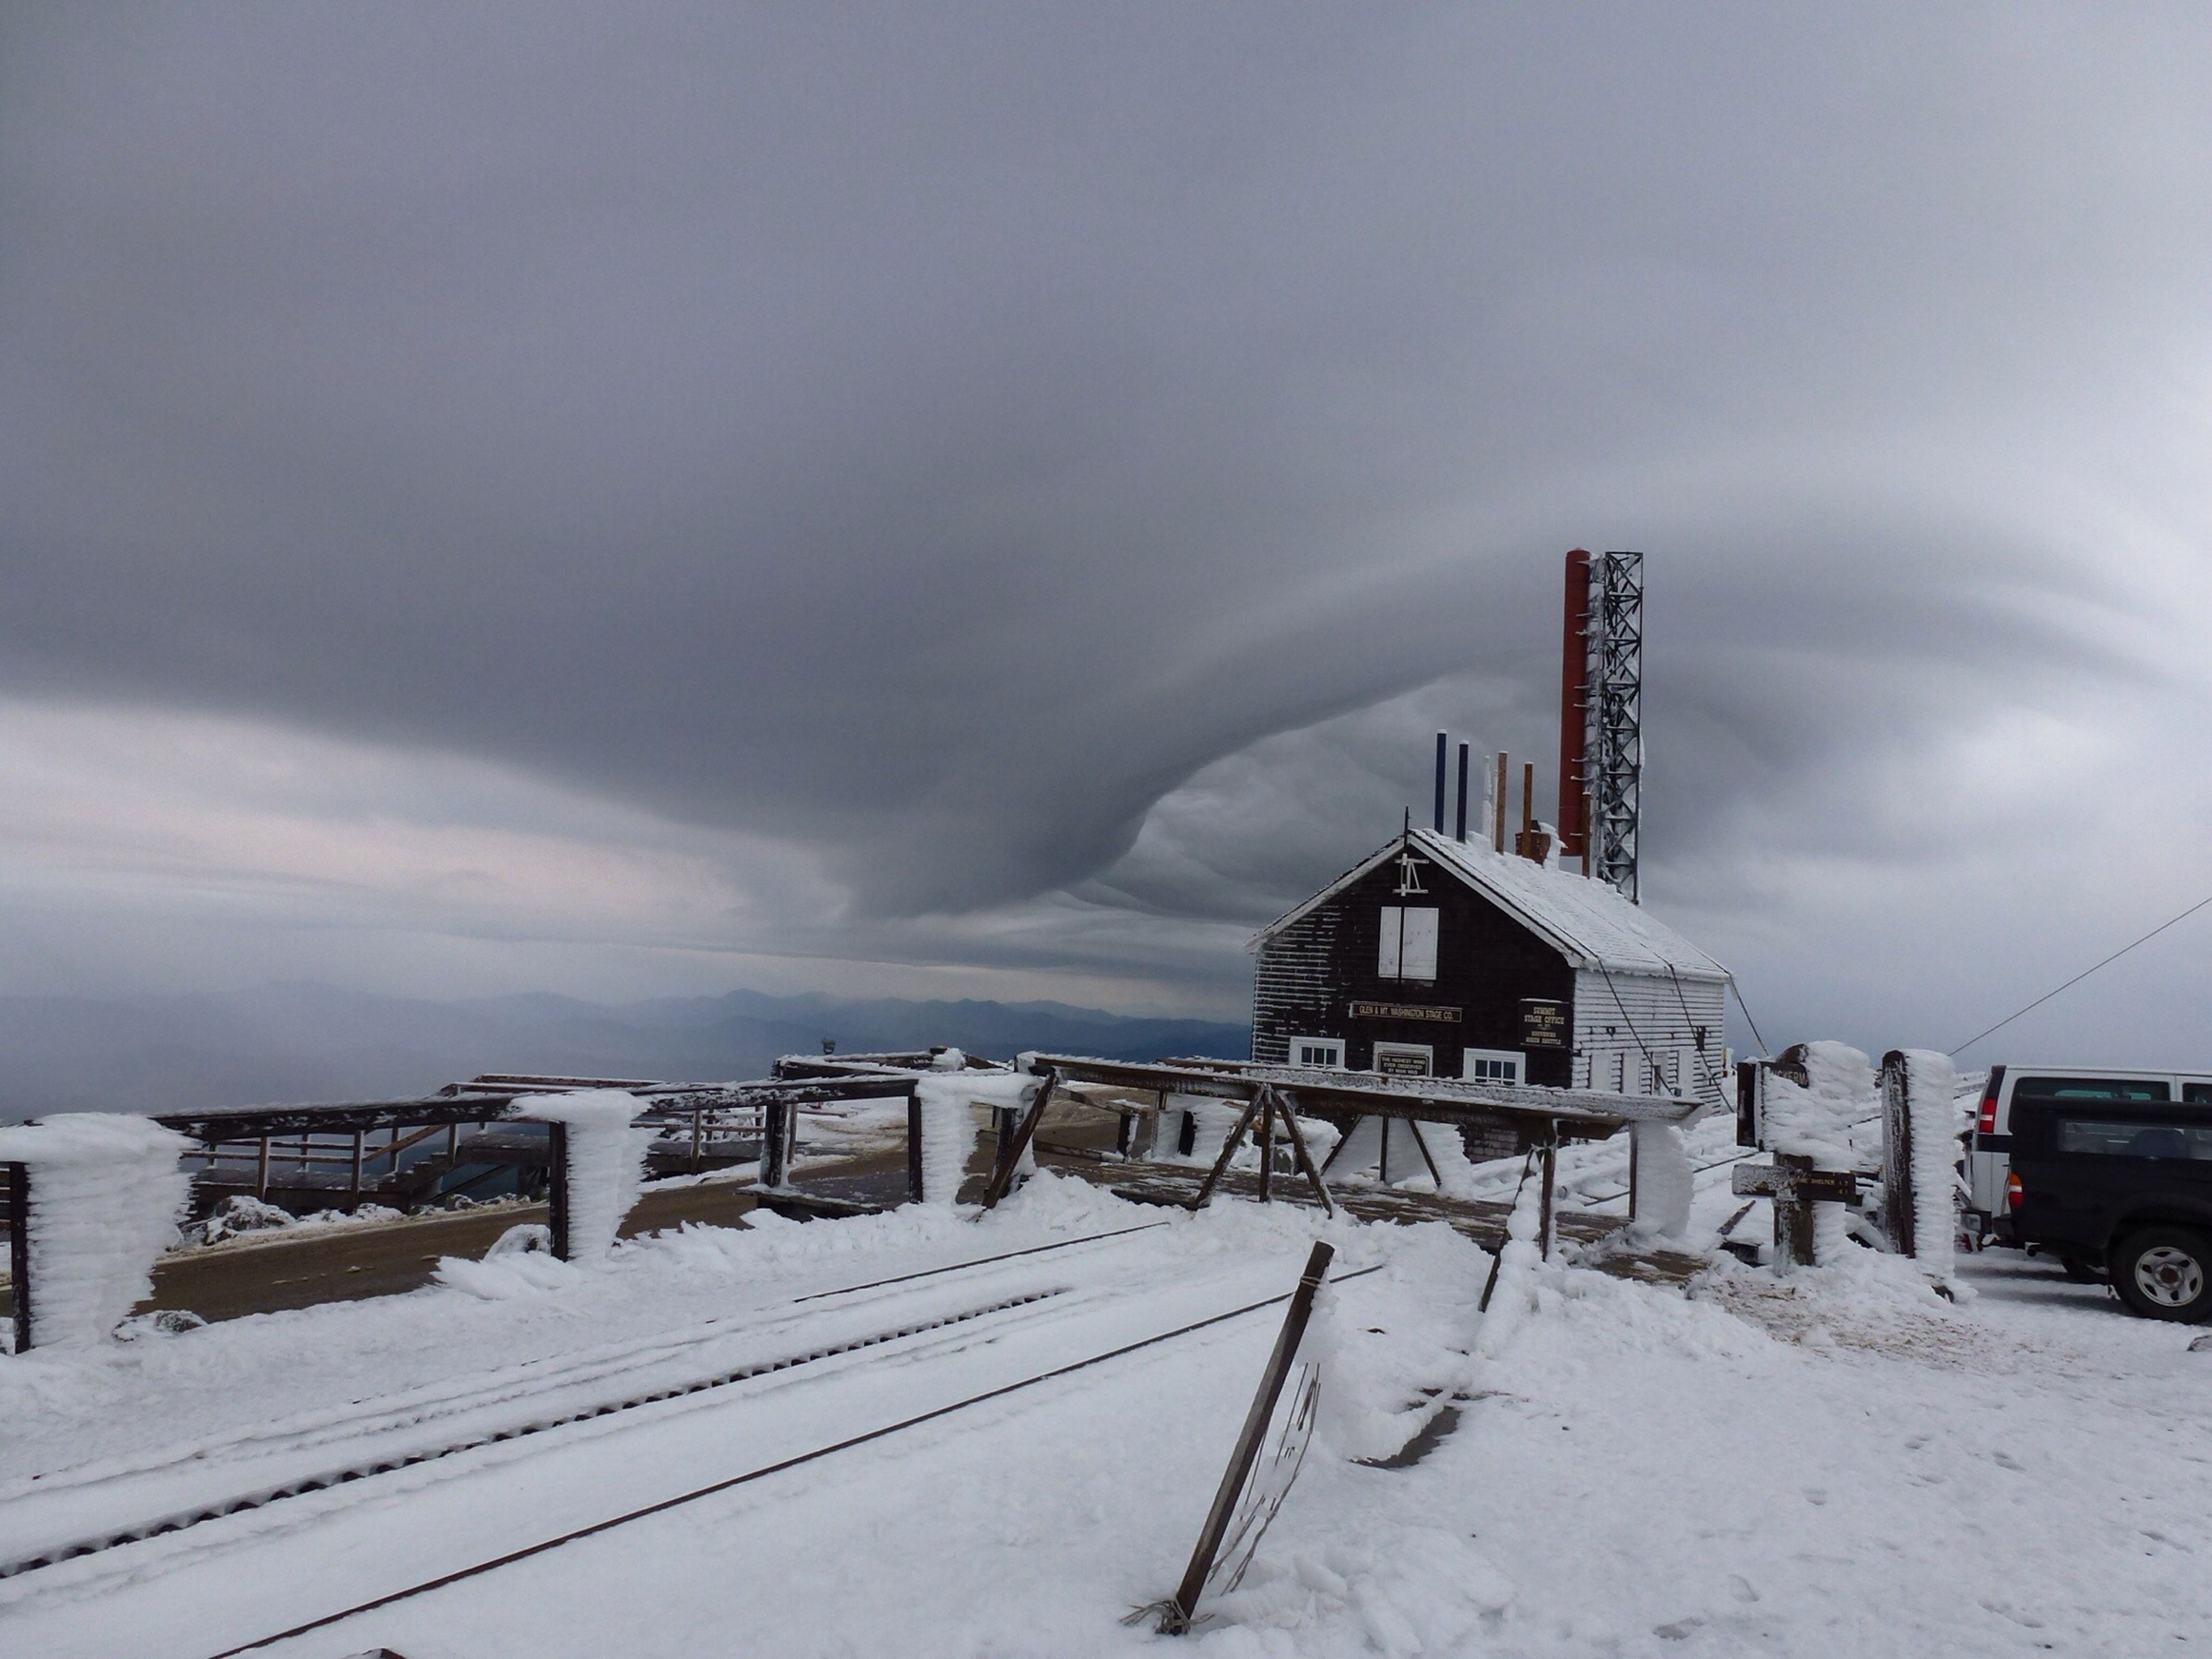 snow, winter, cold temperature, sky, weather, built structure, cloud - sky, architecture, season, covering, building exterior, nature, cloudy, outdoors, day, no people, white color, cloud, landscape, industry